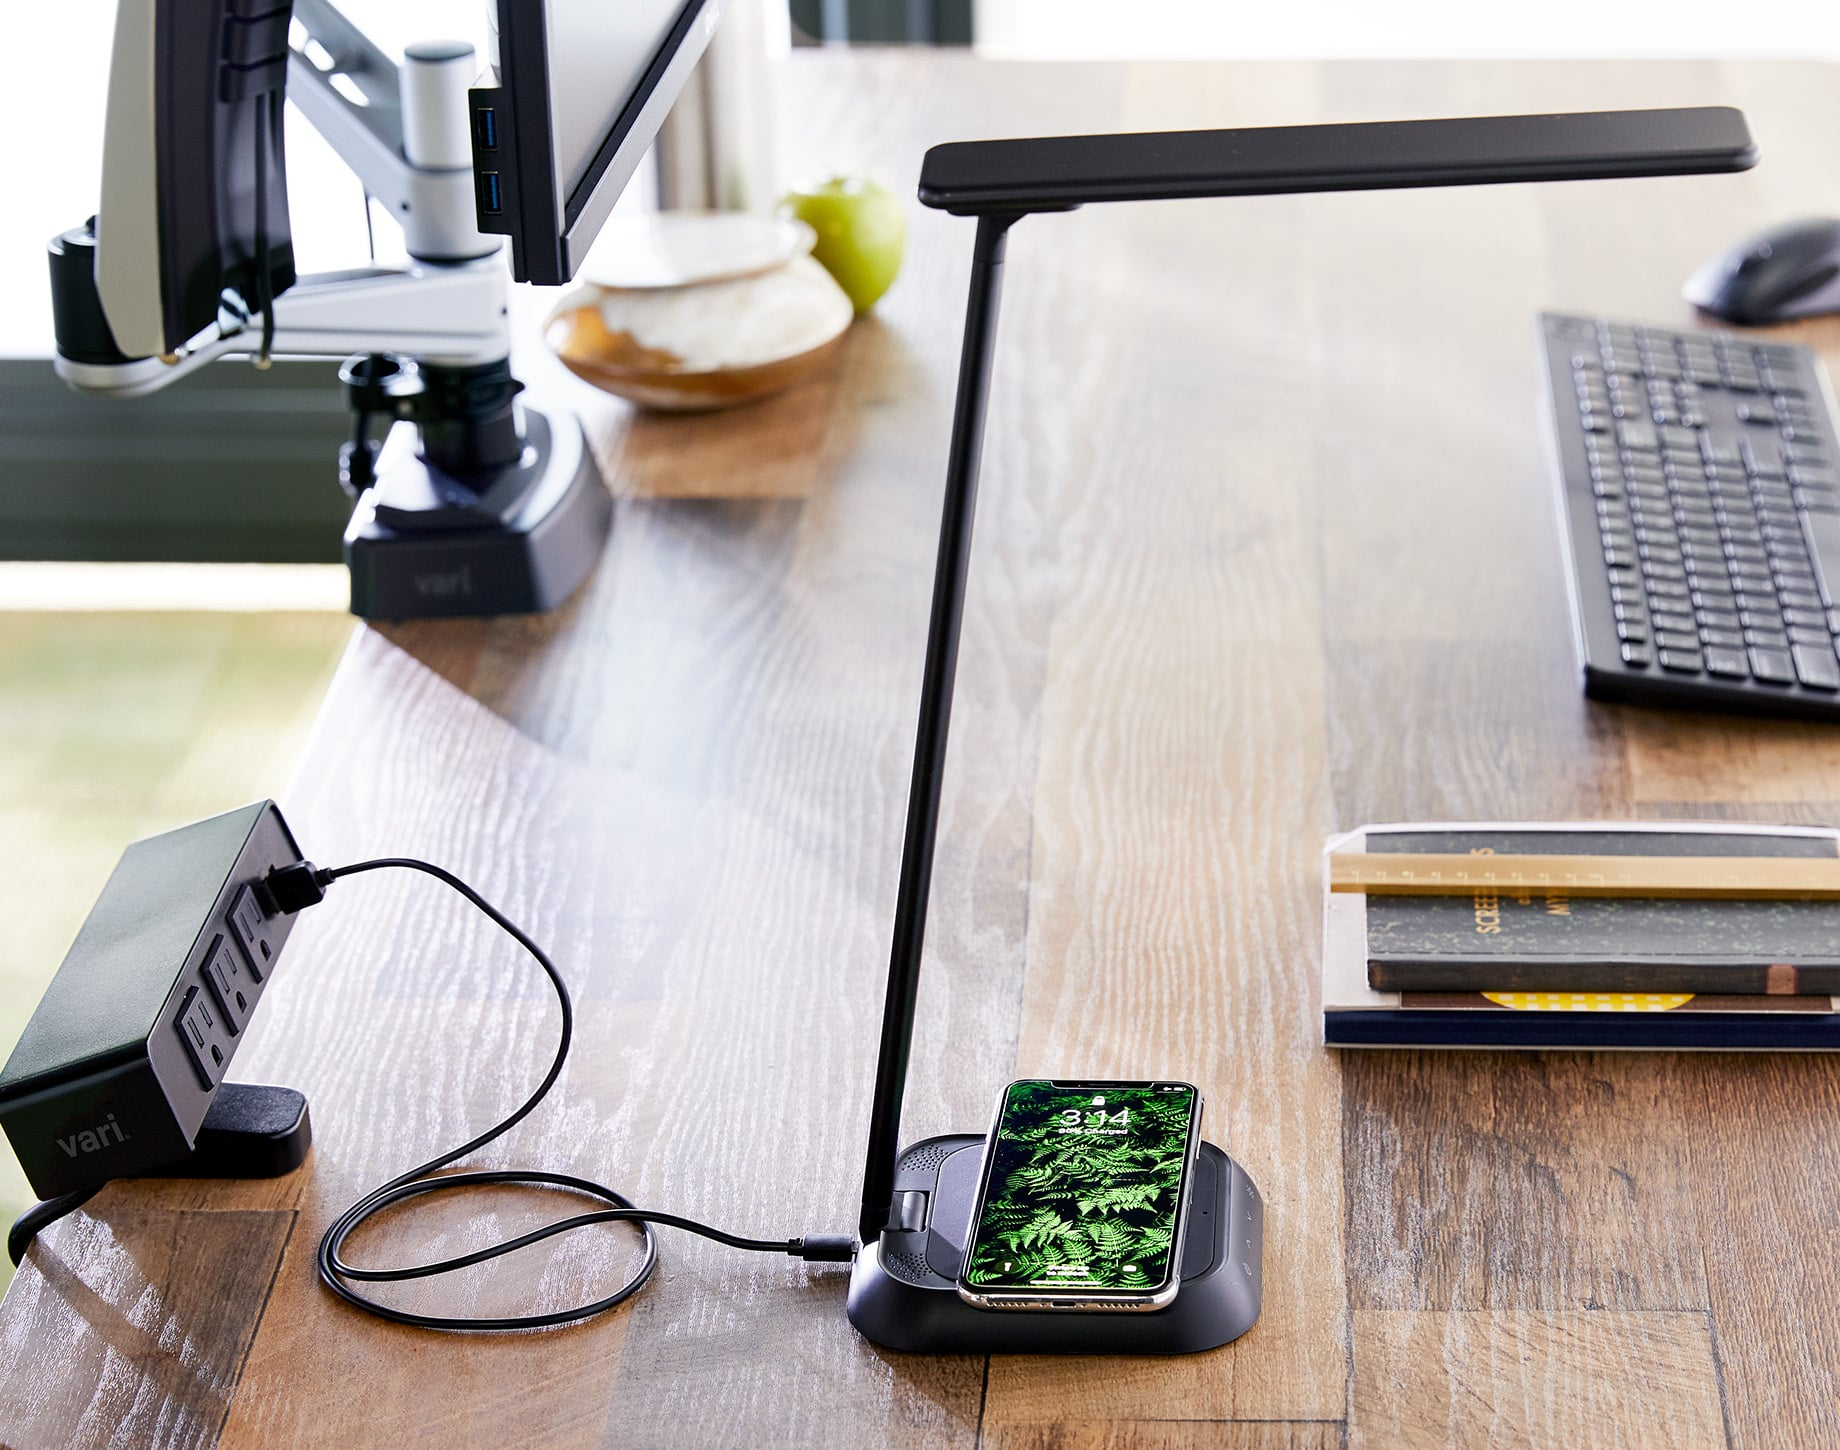 a lamp shines light on a functioning desk and wirelessly charges a smartphone. the light is plugged into a powrerhub, conviently clamped on to the desk.